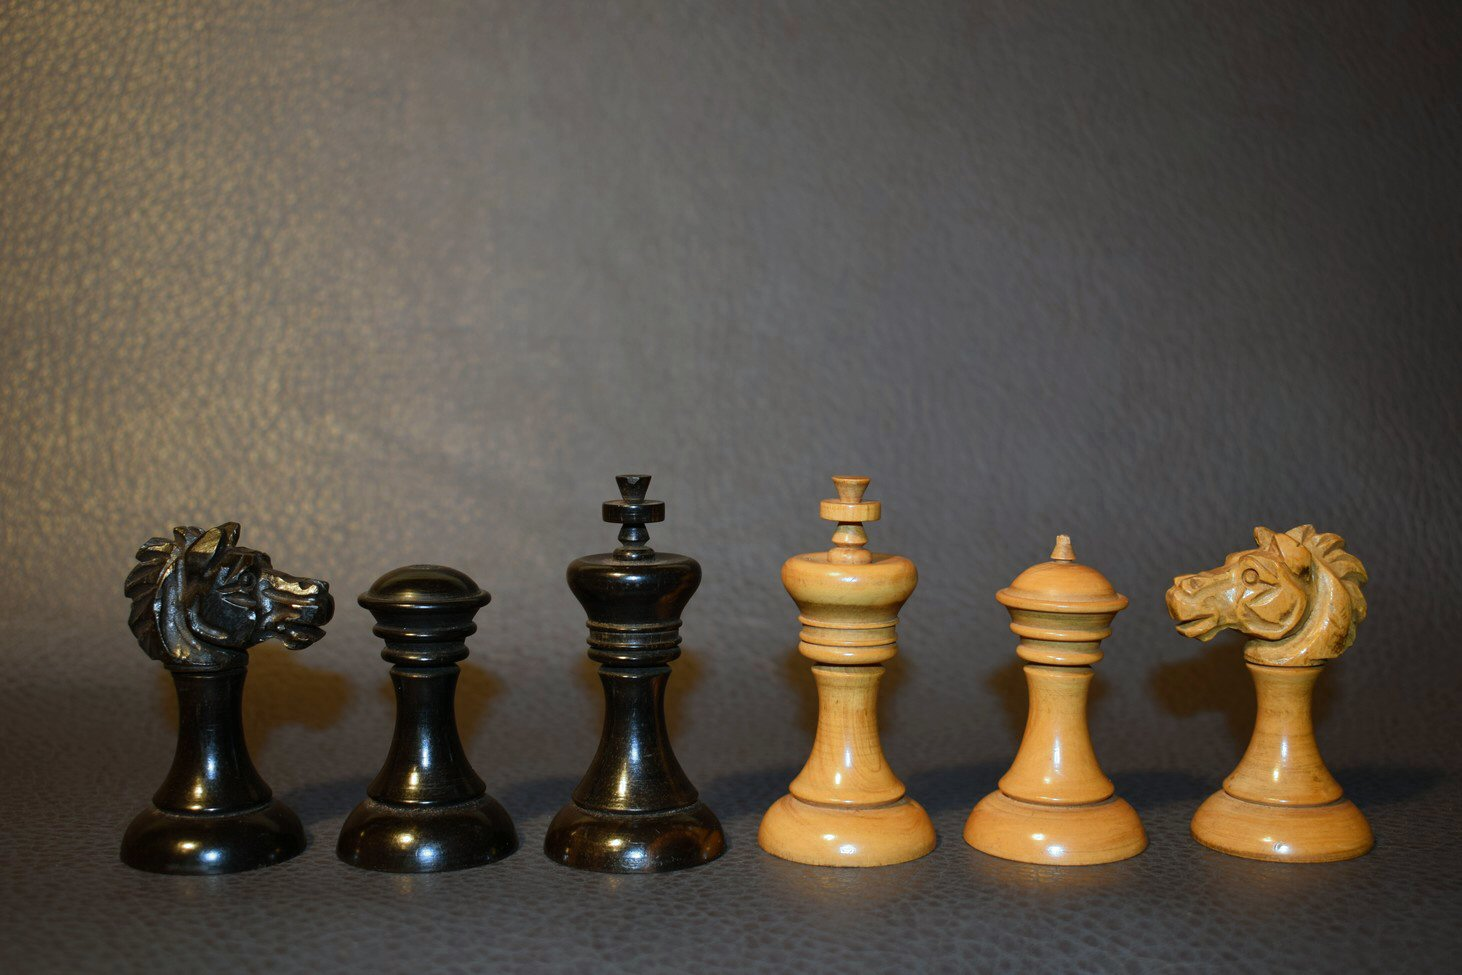 396 - Antique English playing set, boxwood ebony approx 1850 - Dorland Chess (10)